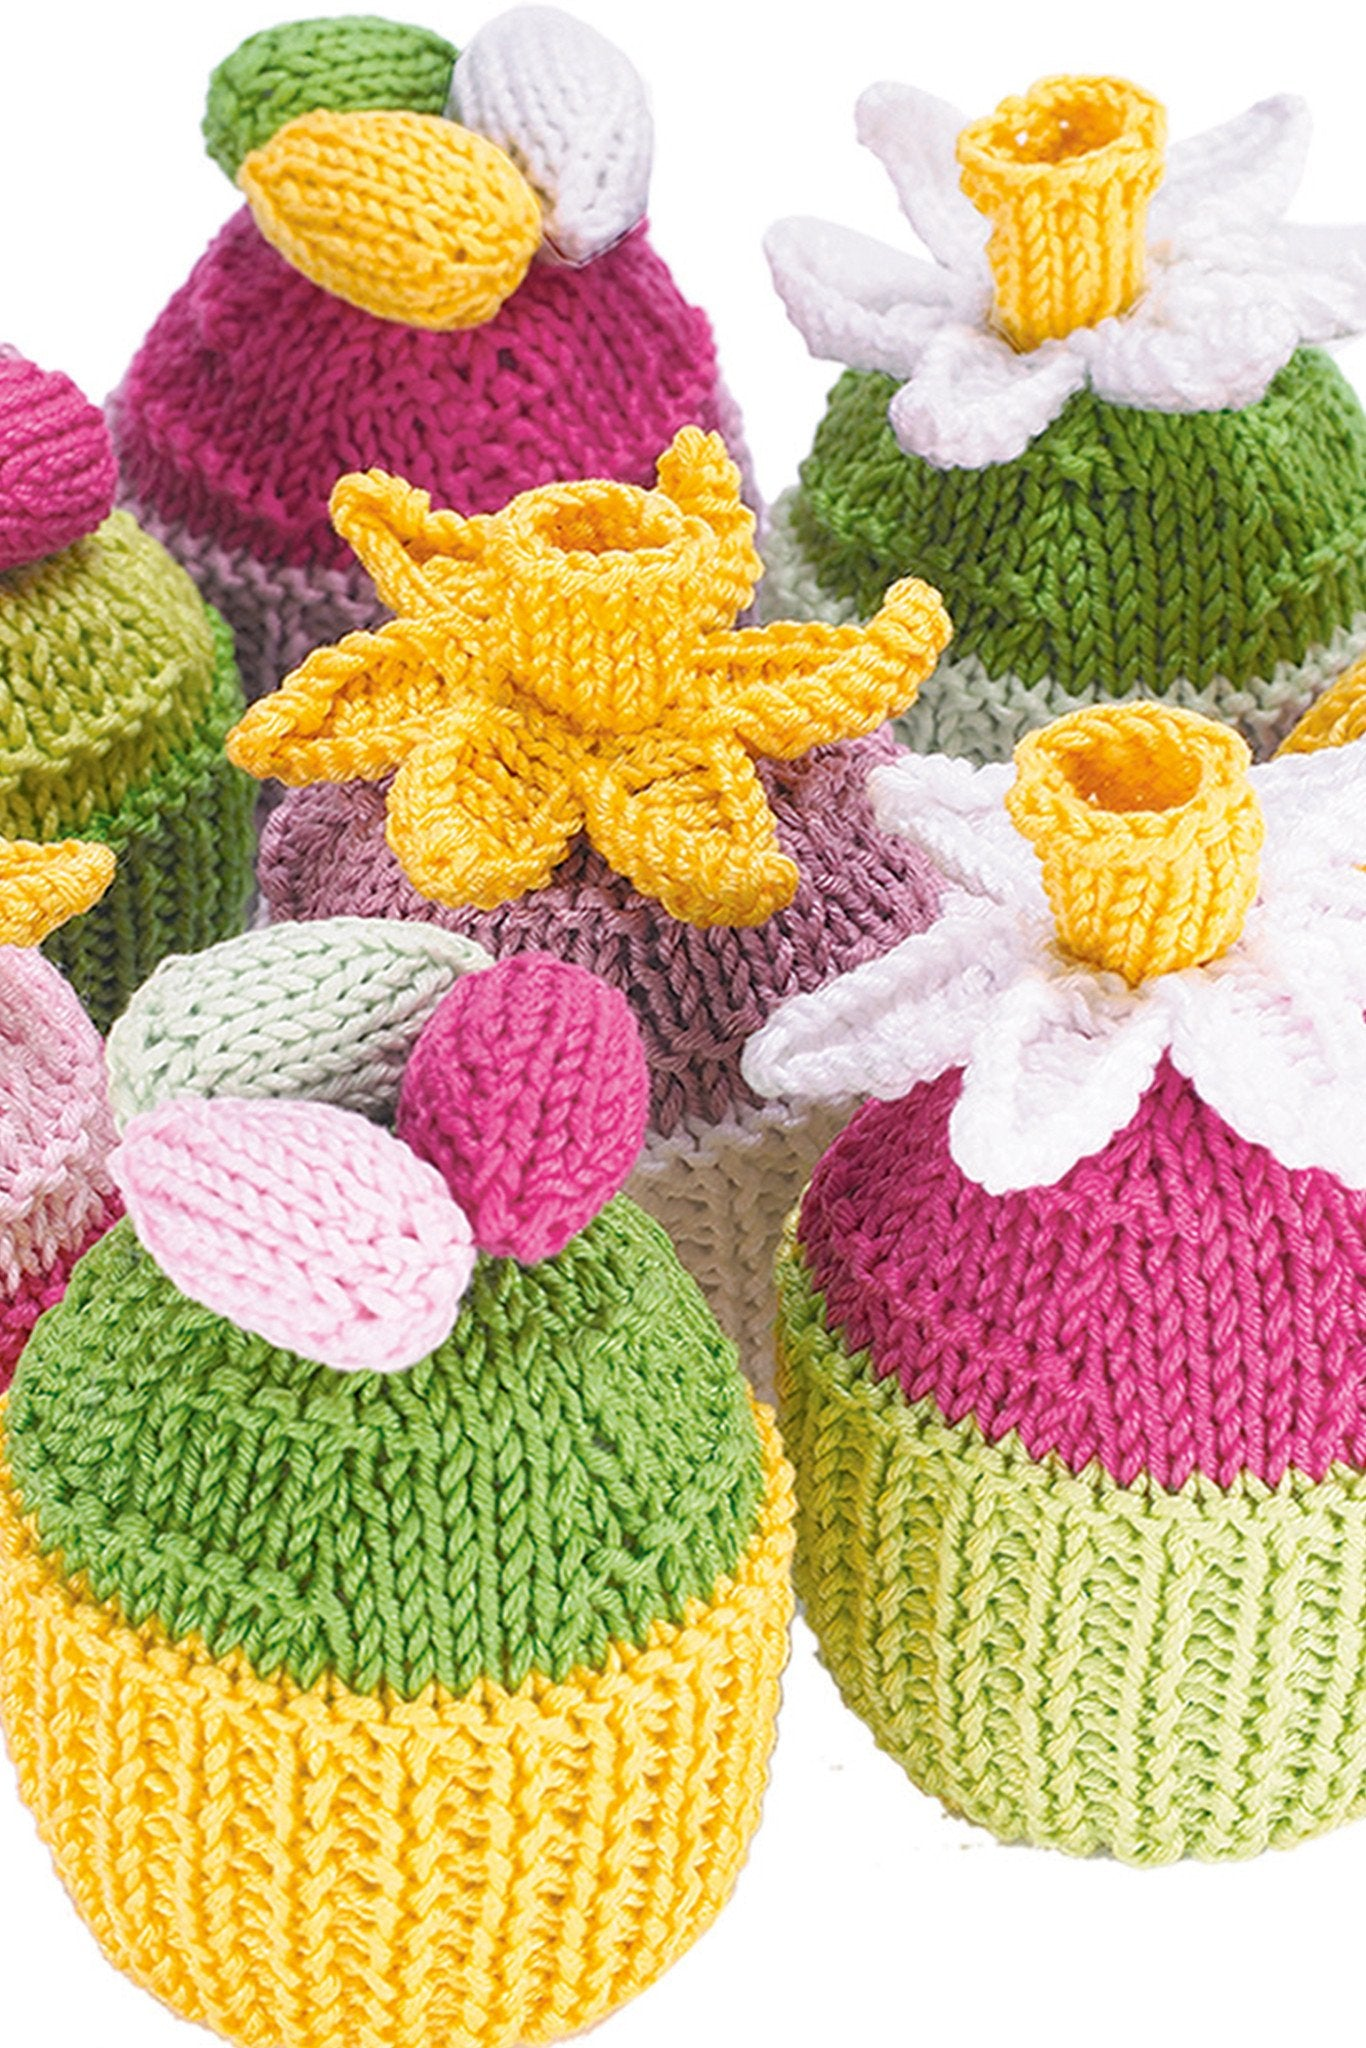 Cupcakes Knitting Pattern – The Knitting Network